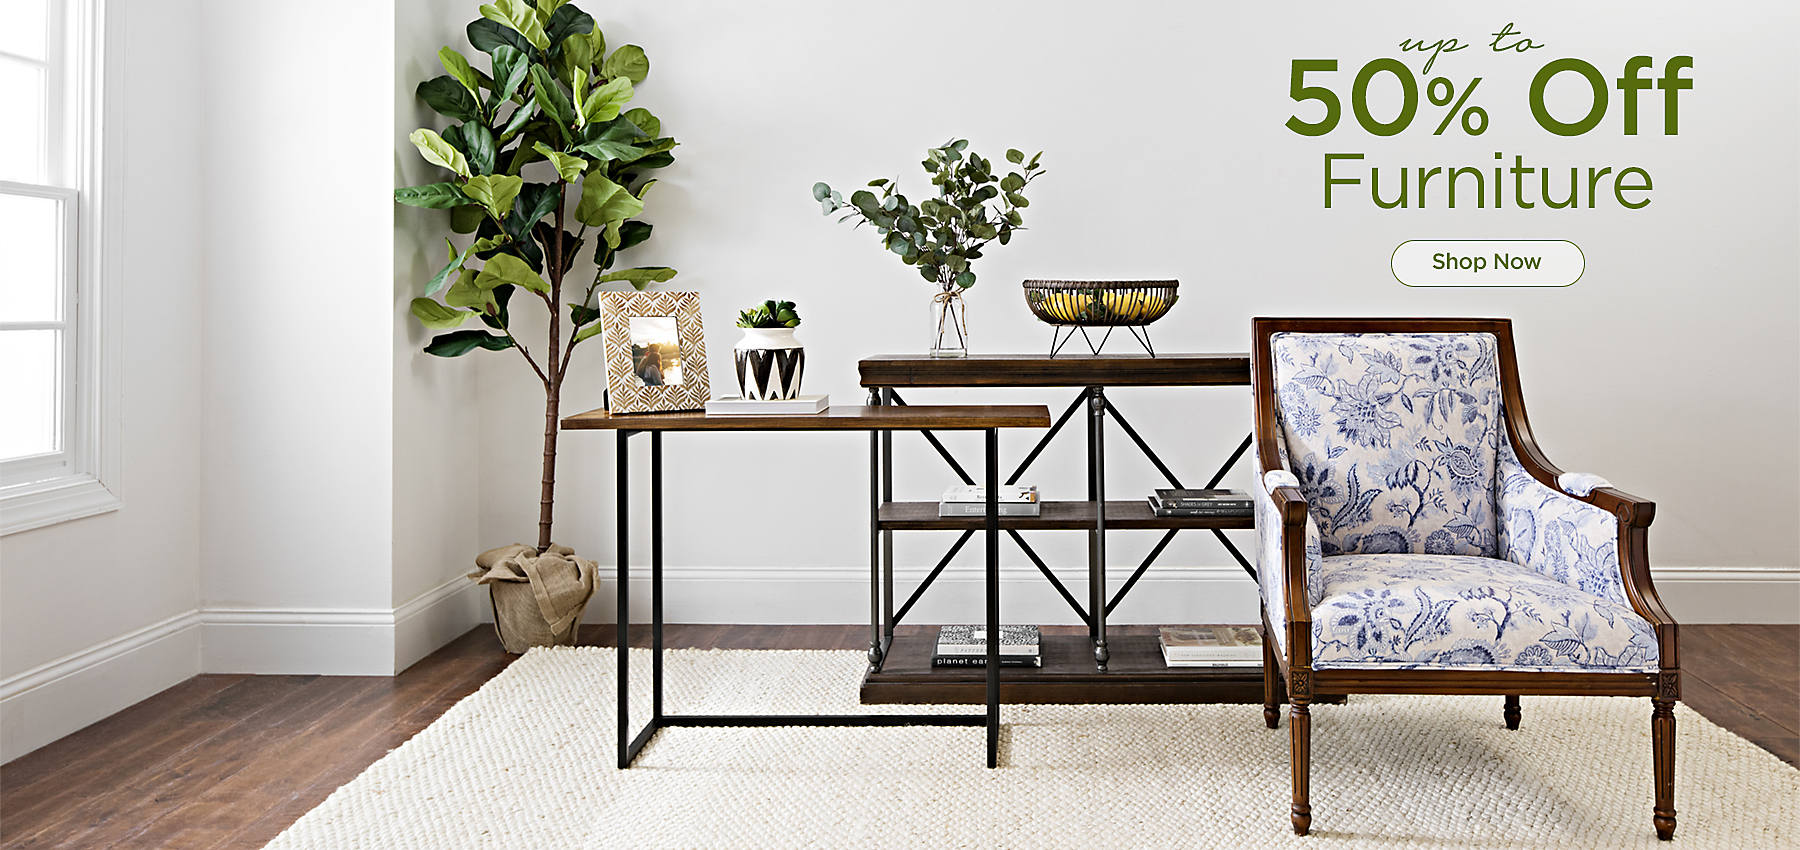 Up to 50% Off Furniture -Shop Now